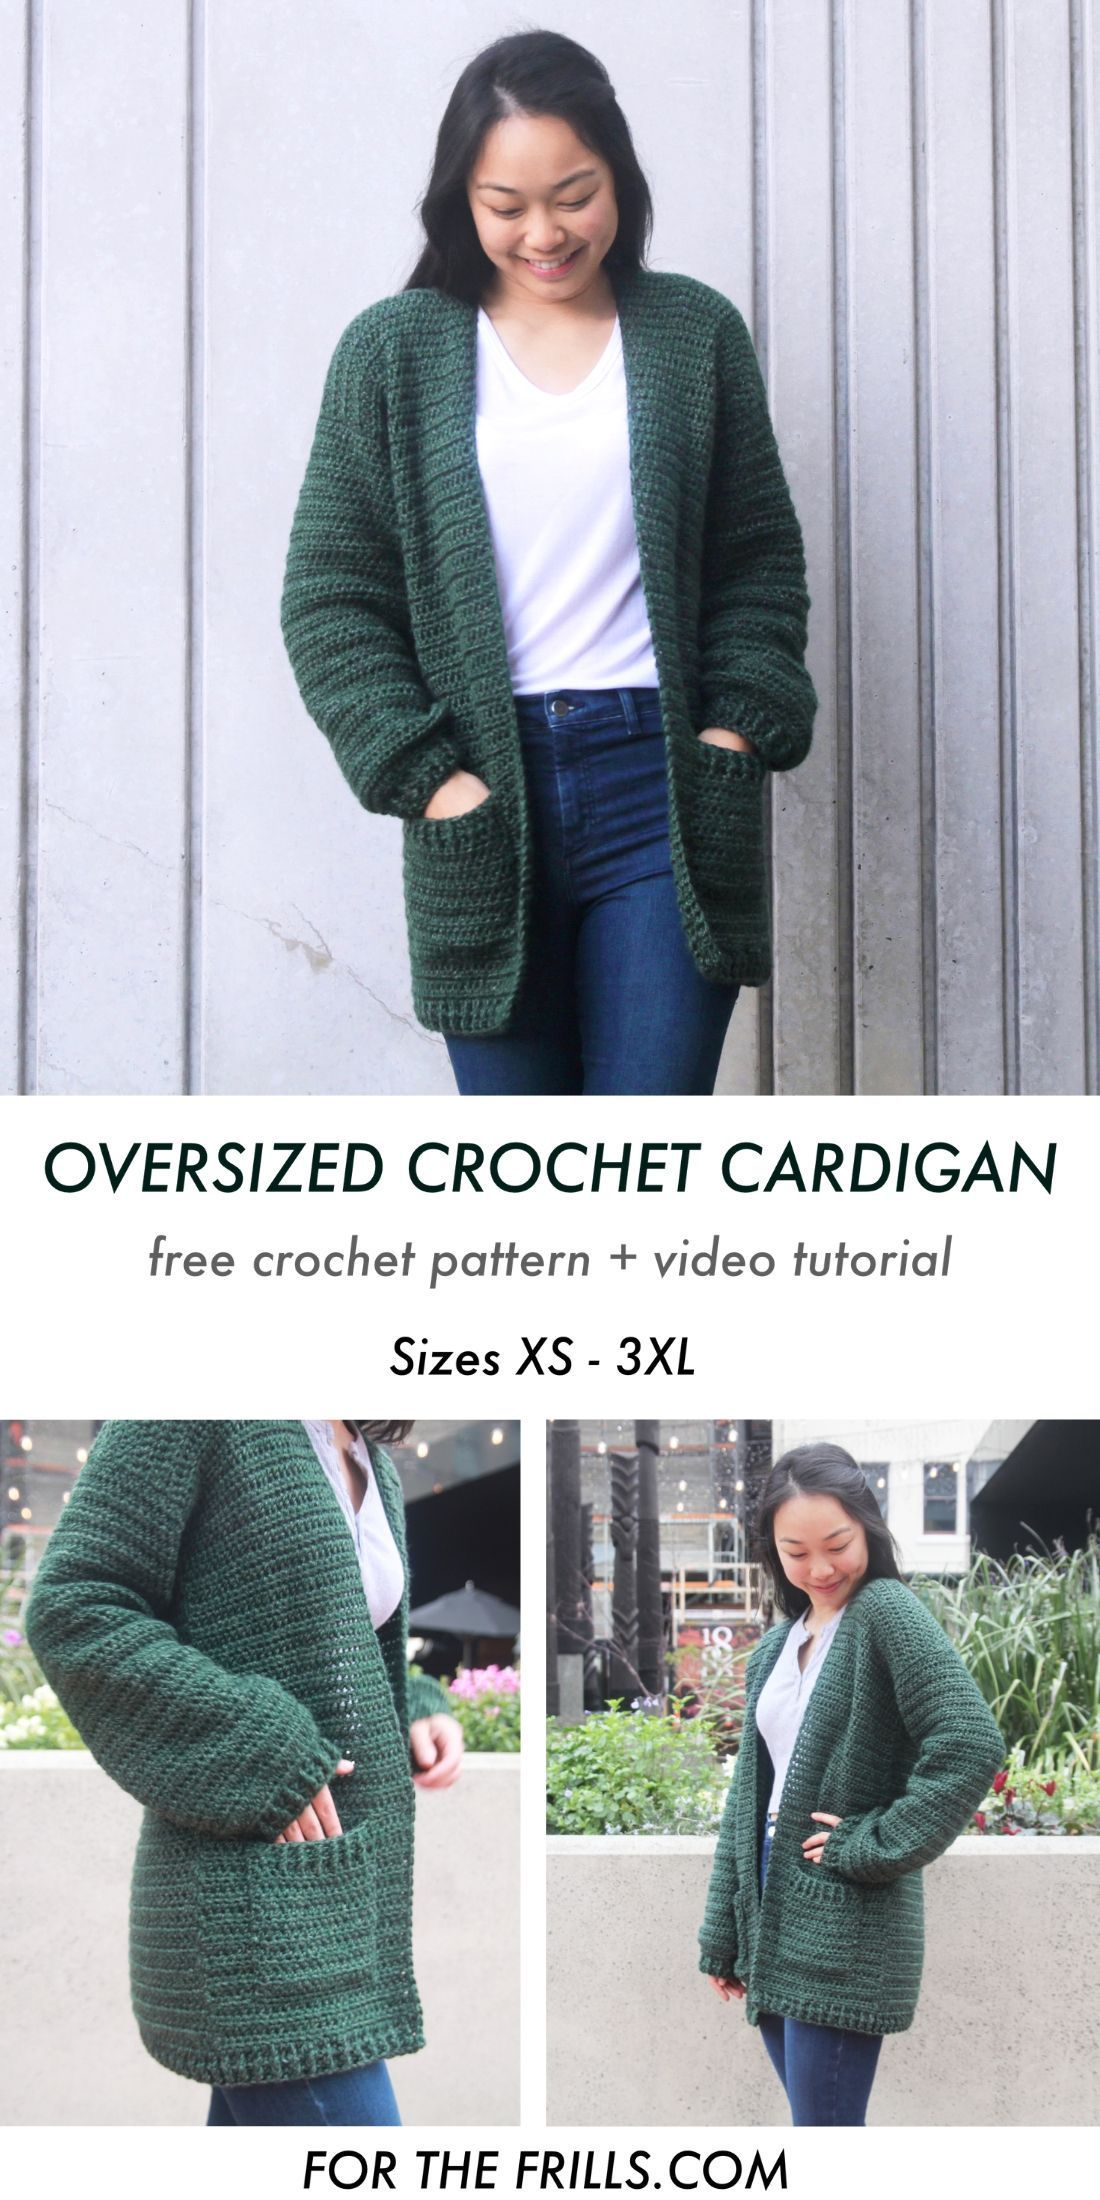 This oversized crochet cardigan sweater pattern is cosy, comfy and perfect for f…